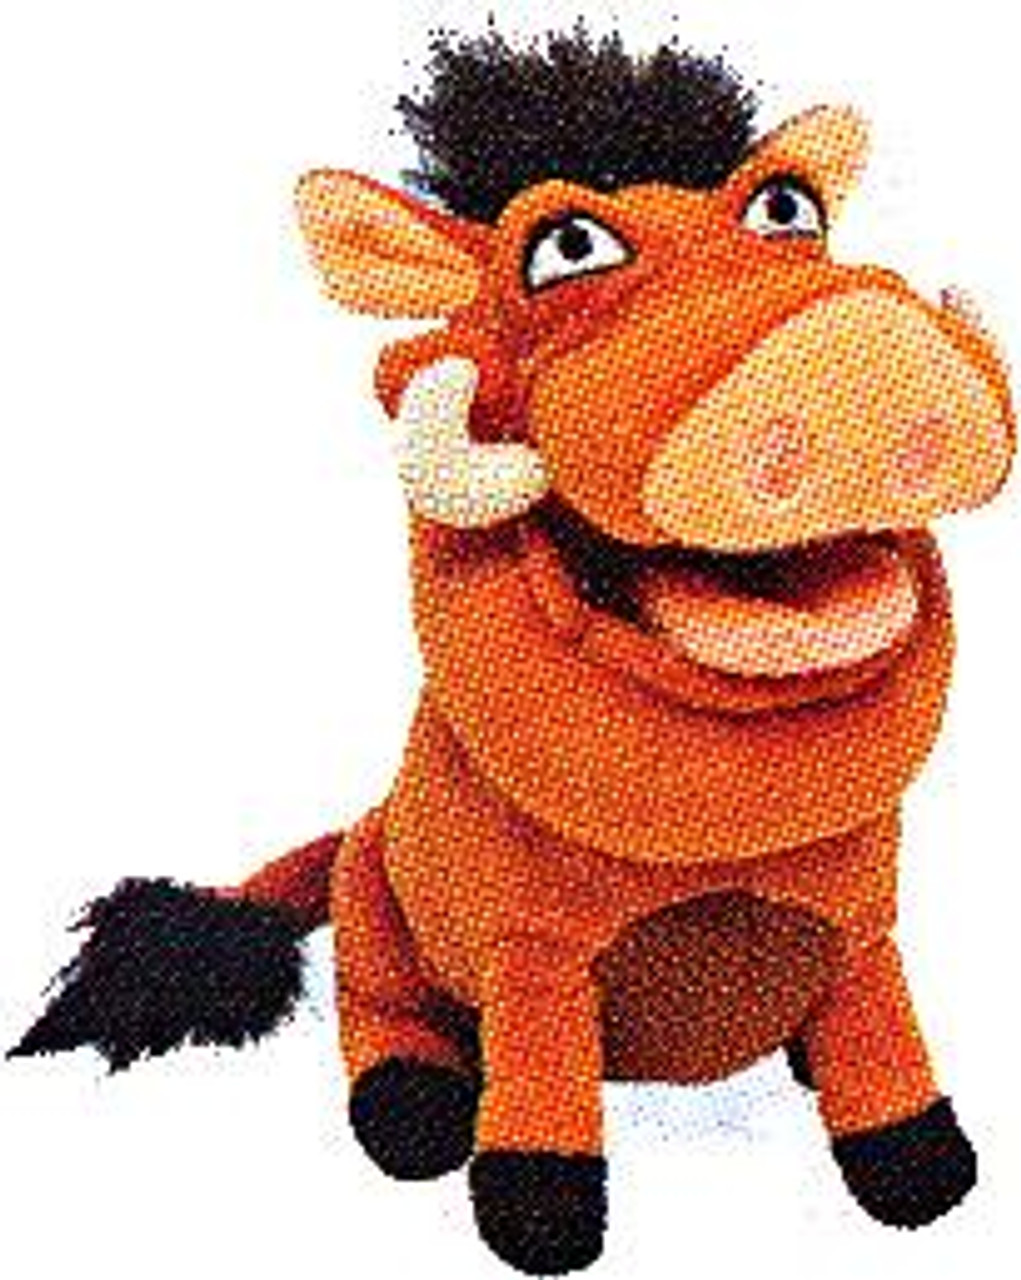 Disney The Lion King Pumbaa Exclusive 7-Inch Plush Figure